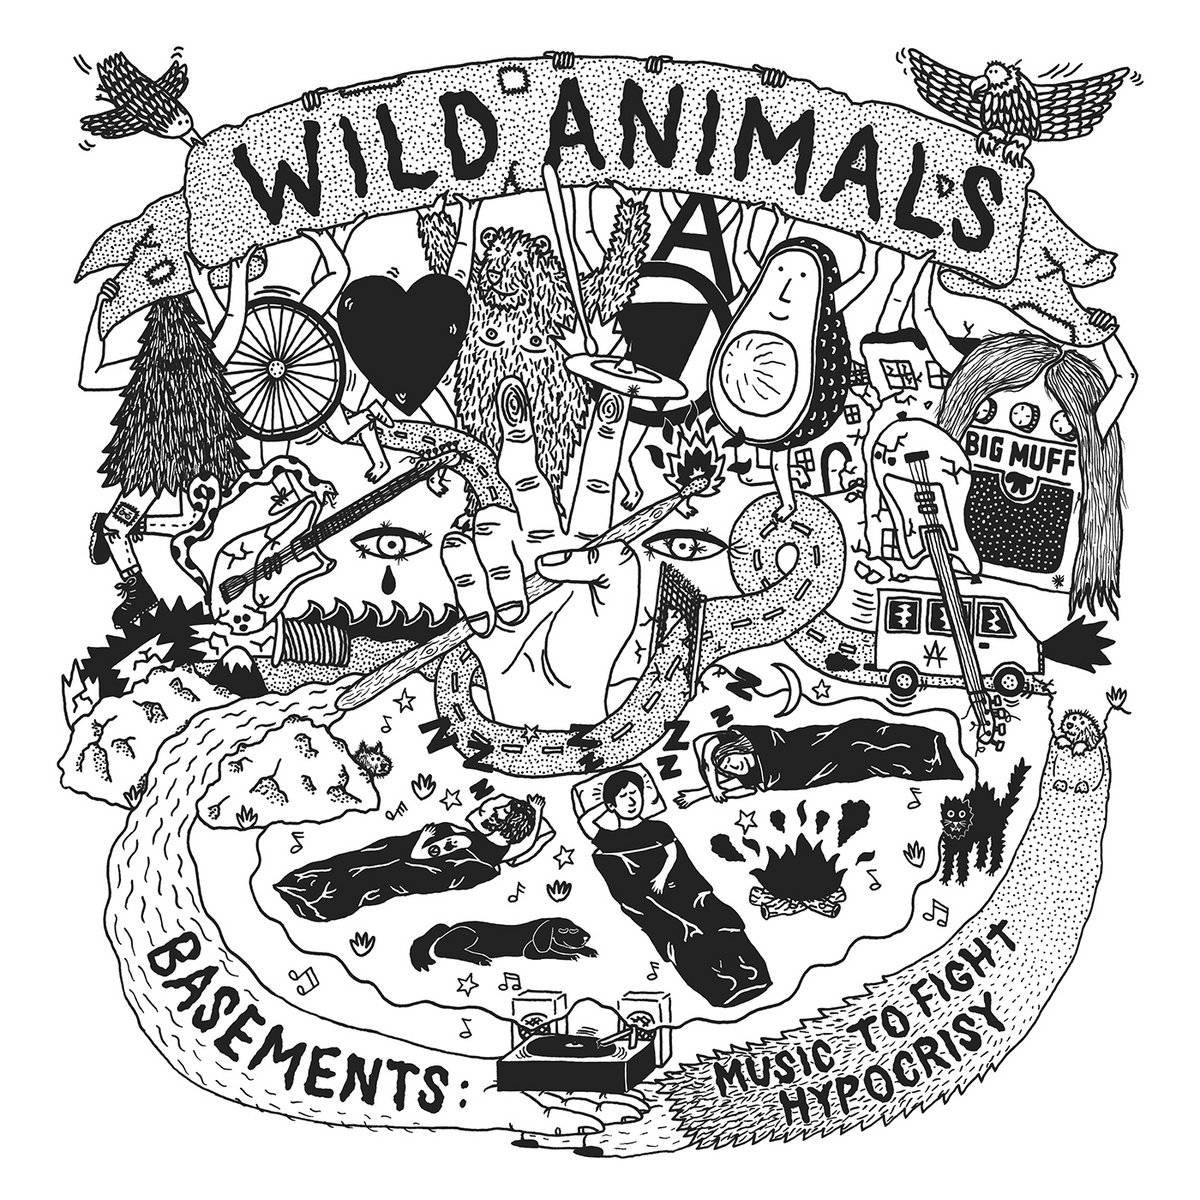 Wild Animals - Basements: Music To Fight Hypocrisy